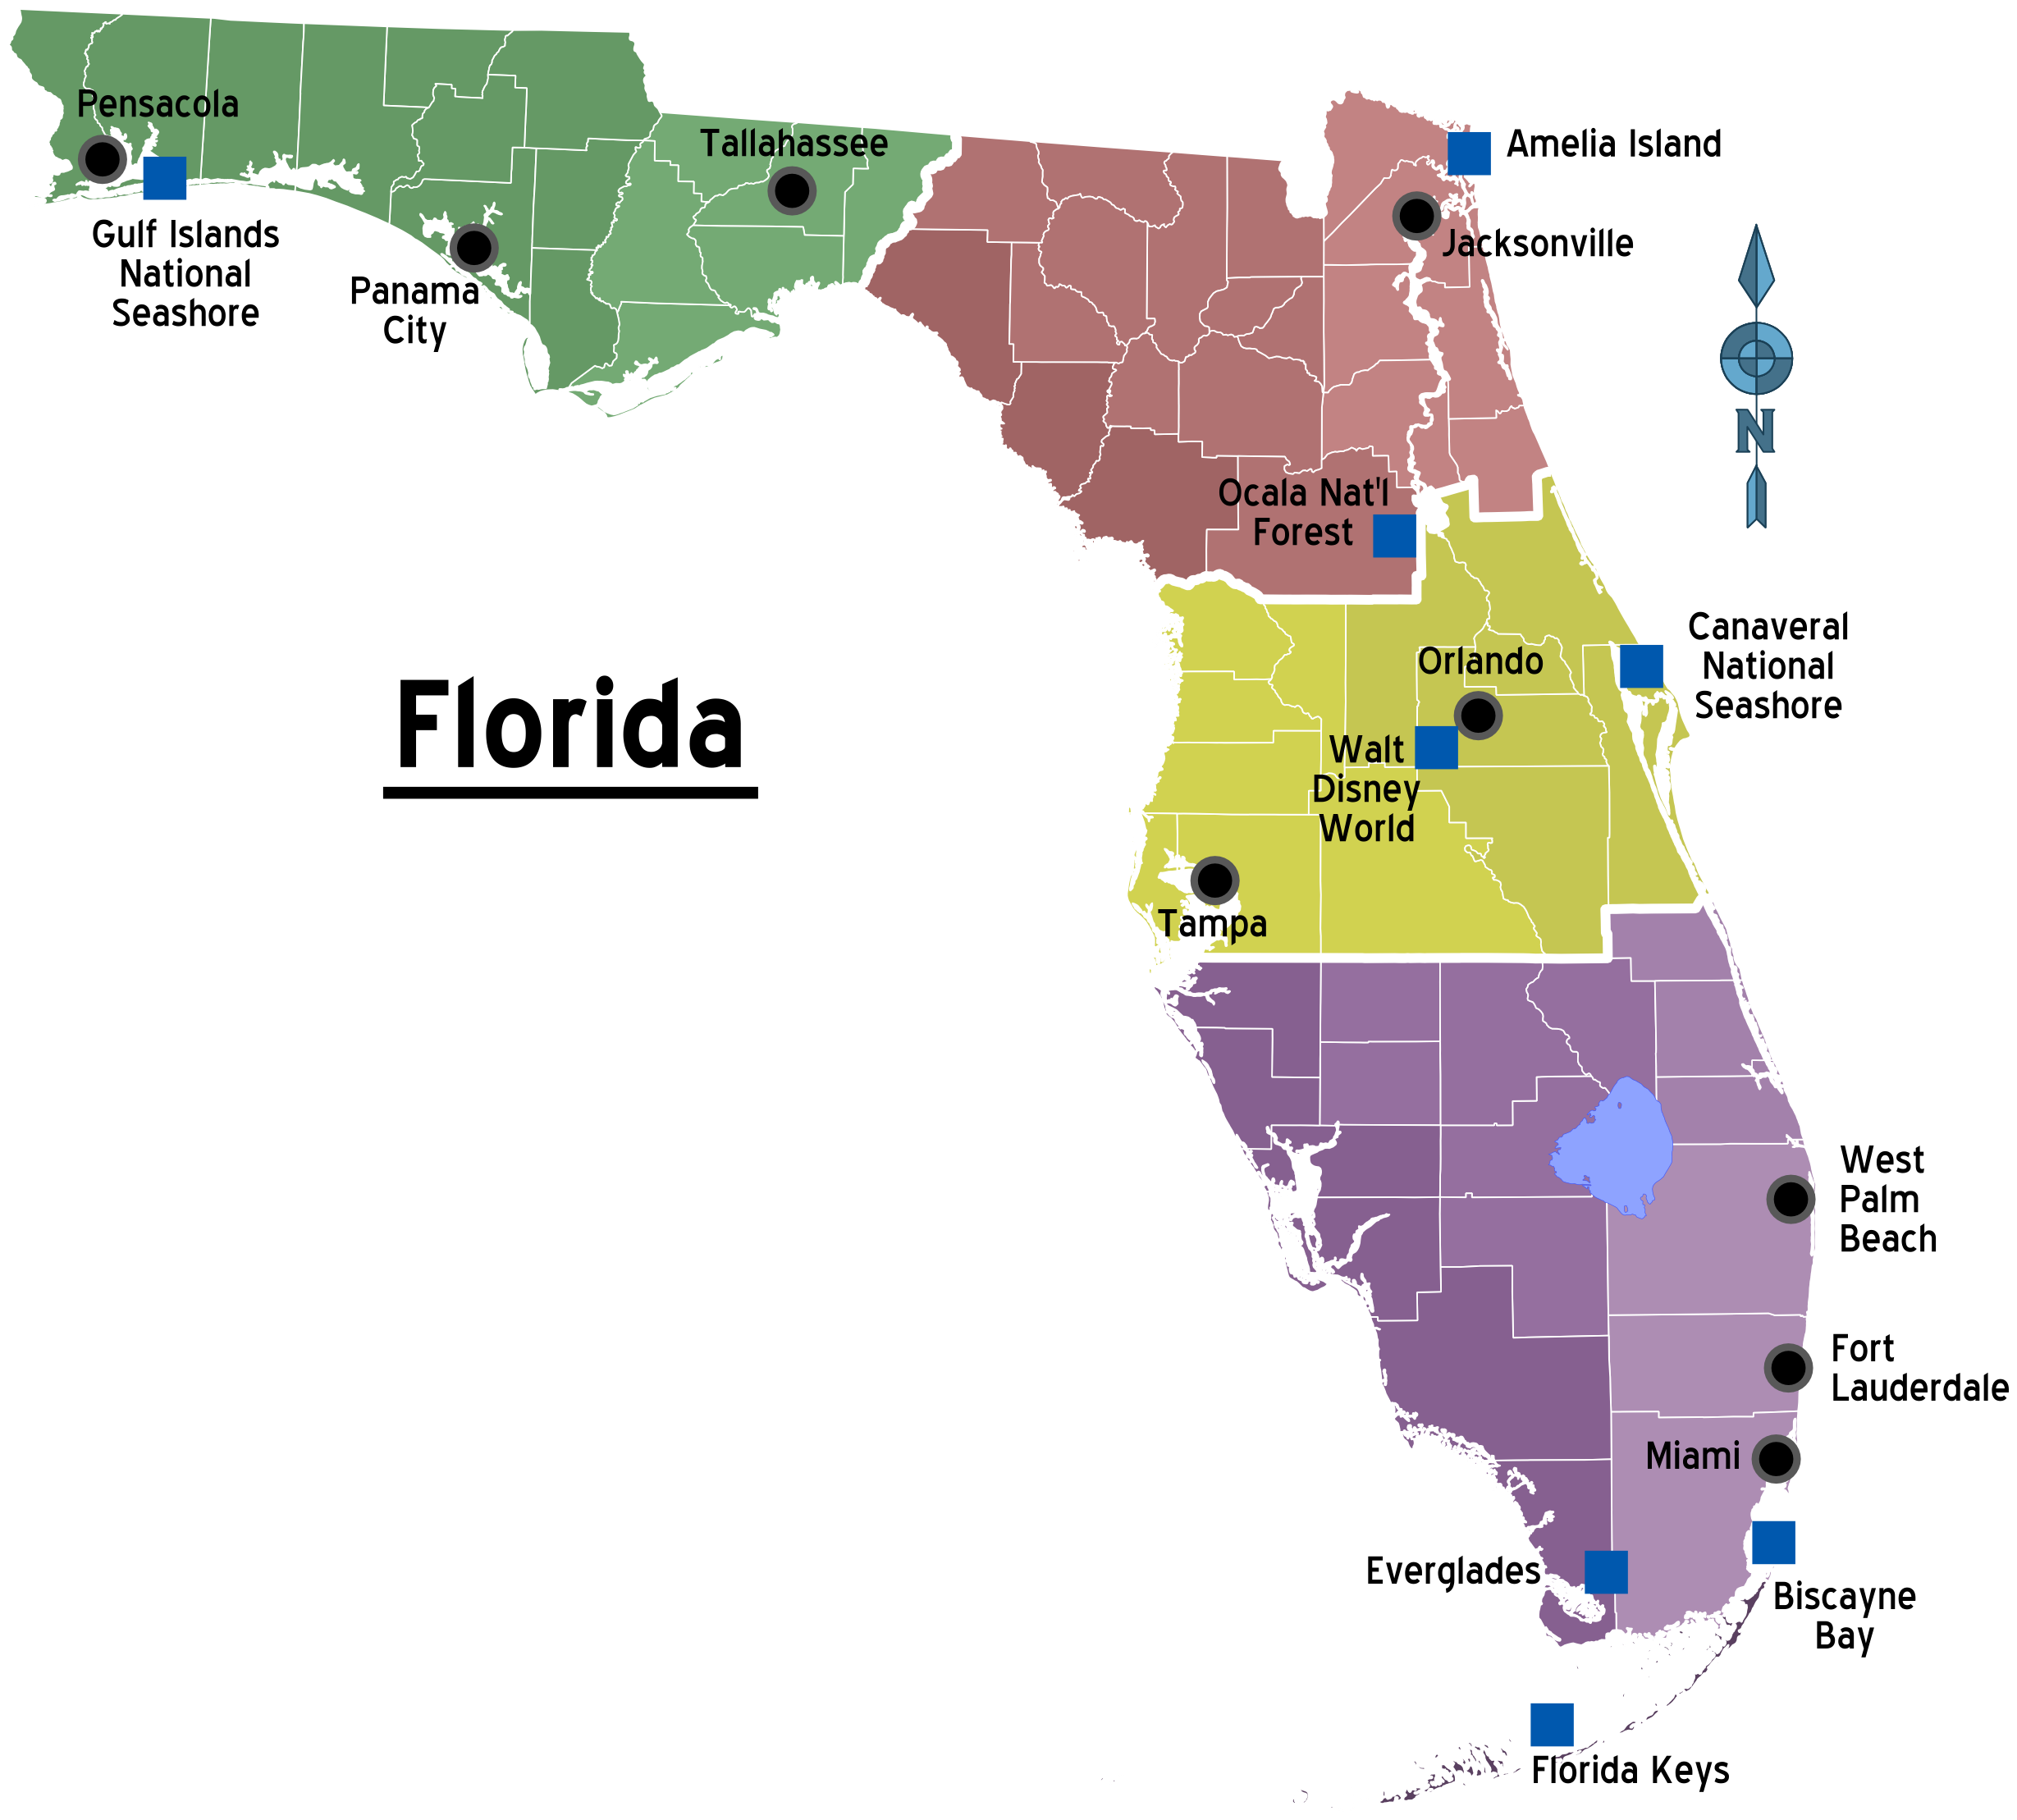 FileMap Of Florida Regions With Citiespng Wikimedia Commons - Map of northern florida cities